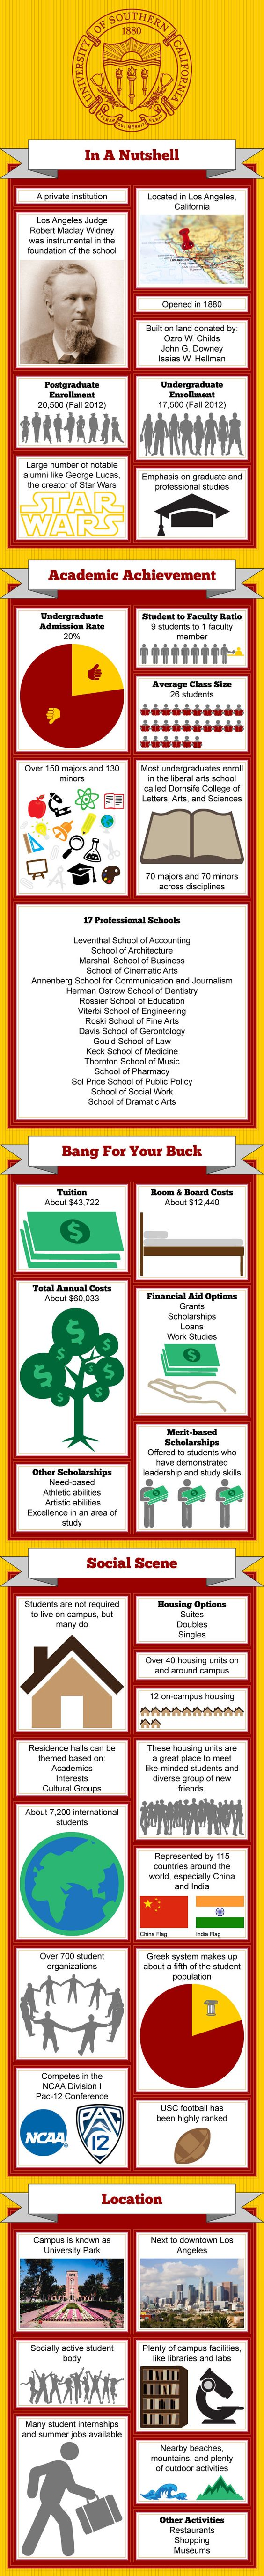 University of Southern California Infographic